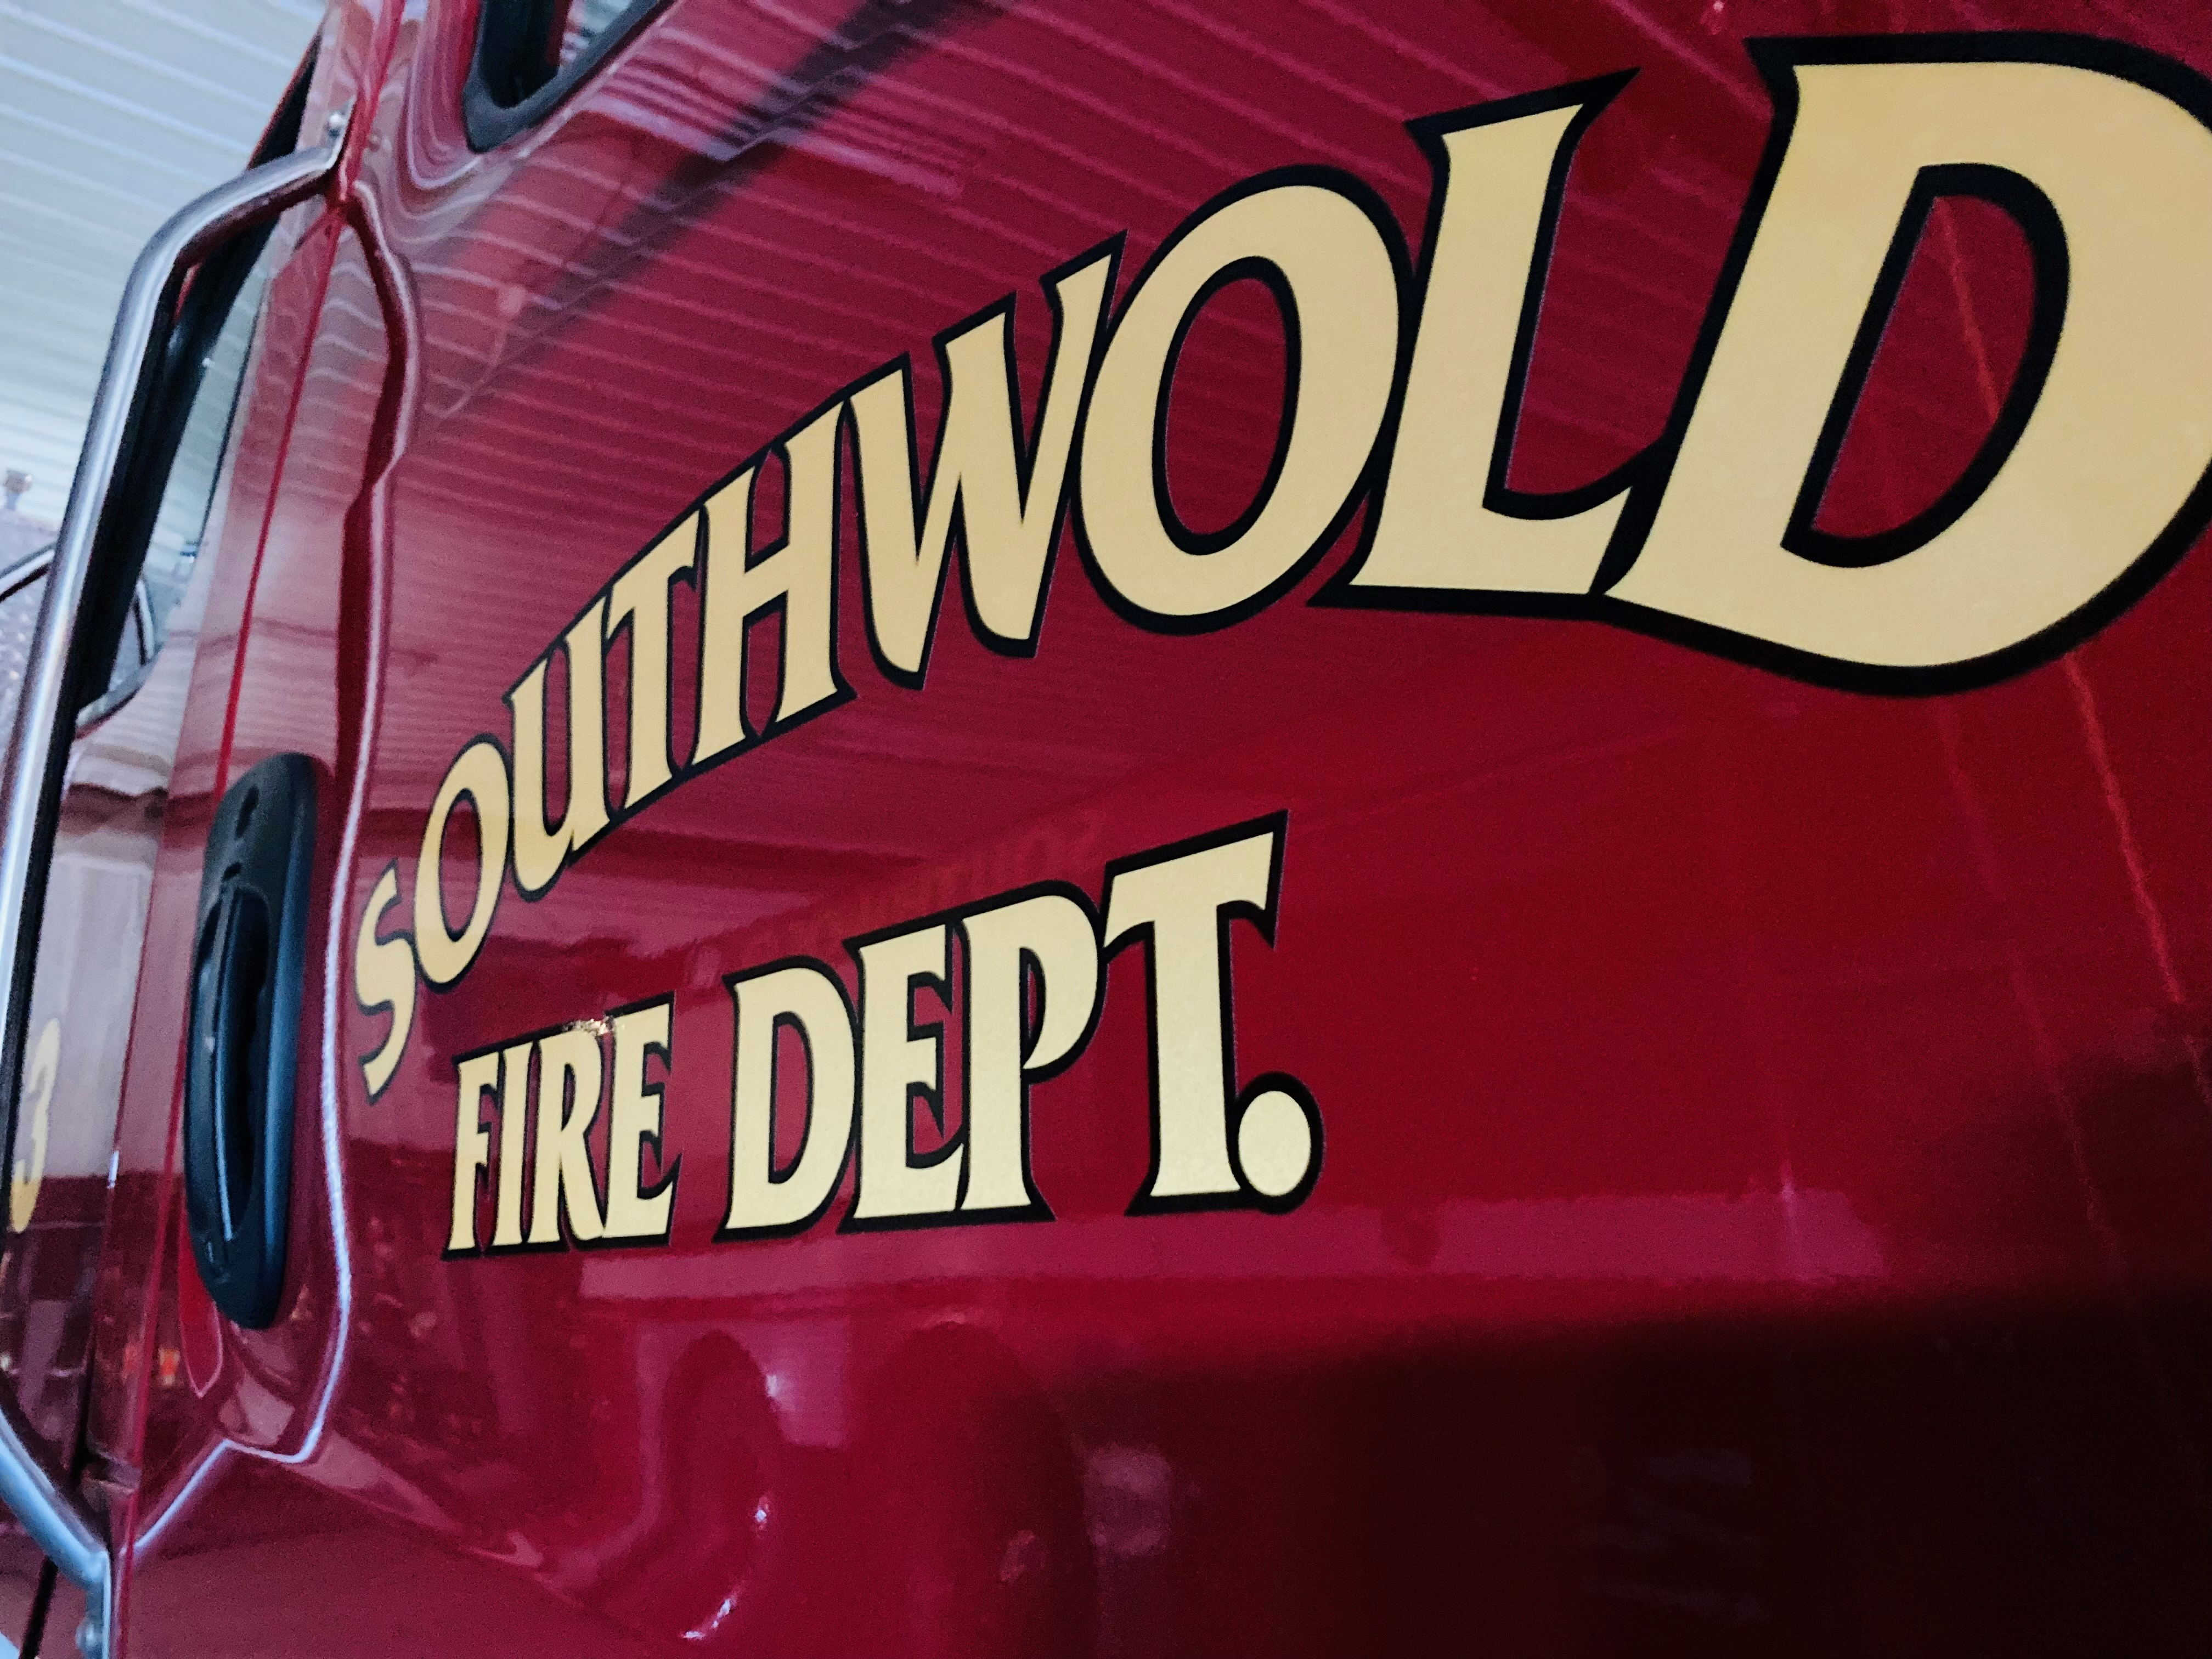 Southwold Fire Truck Image